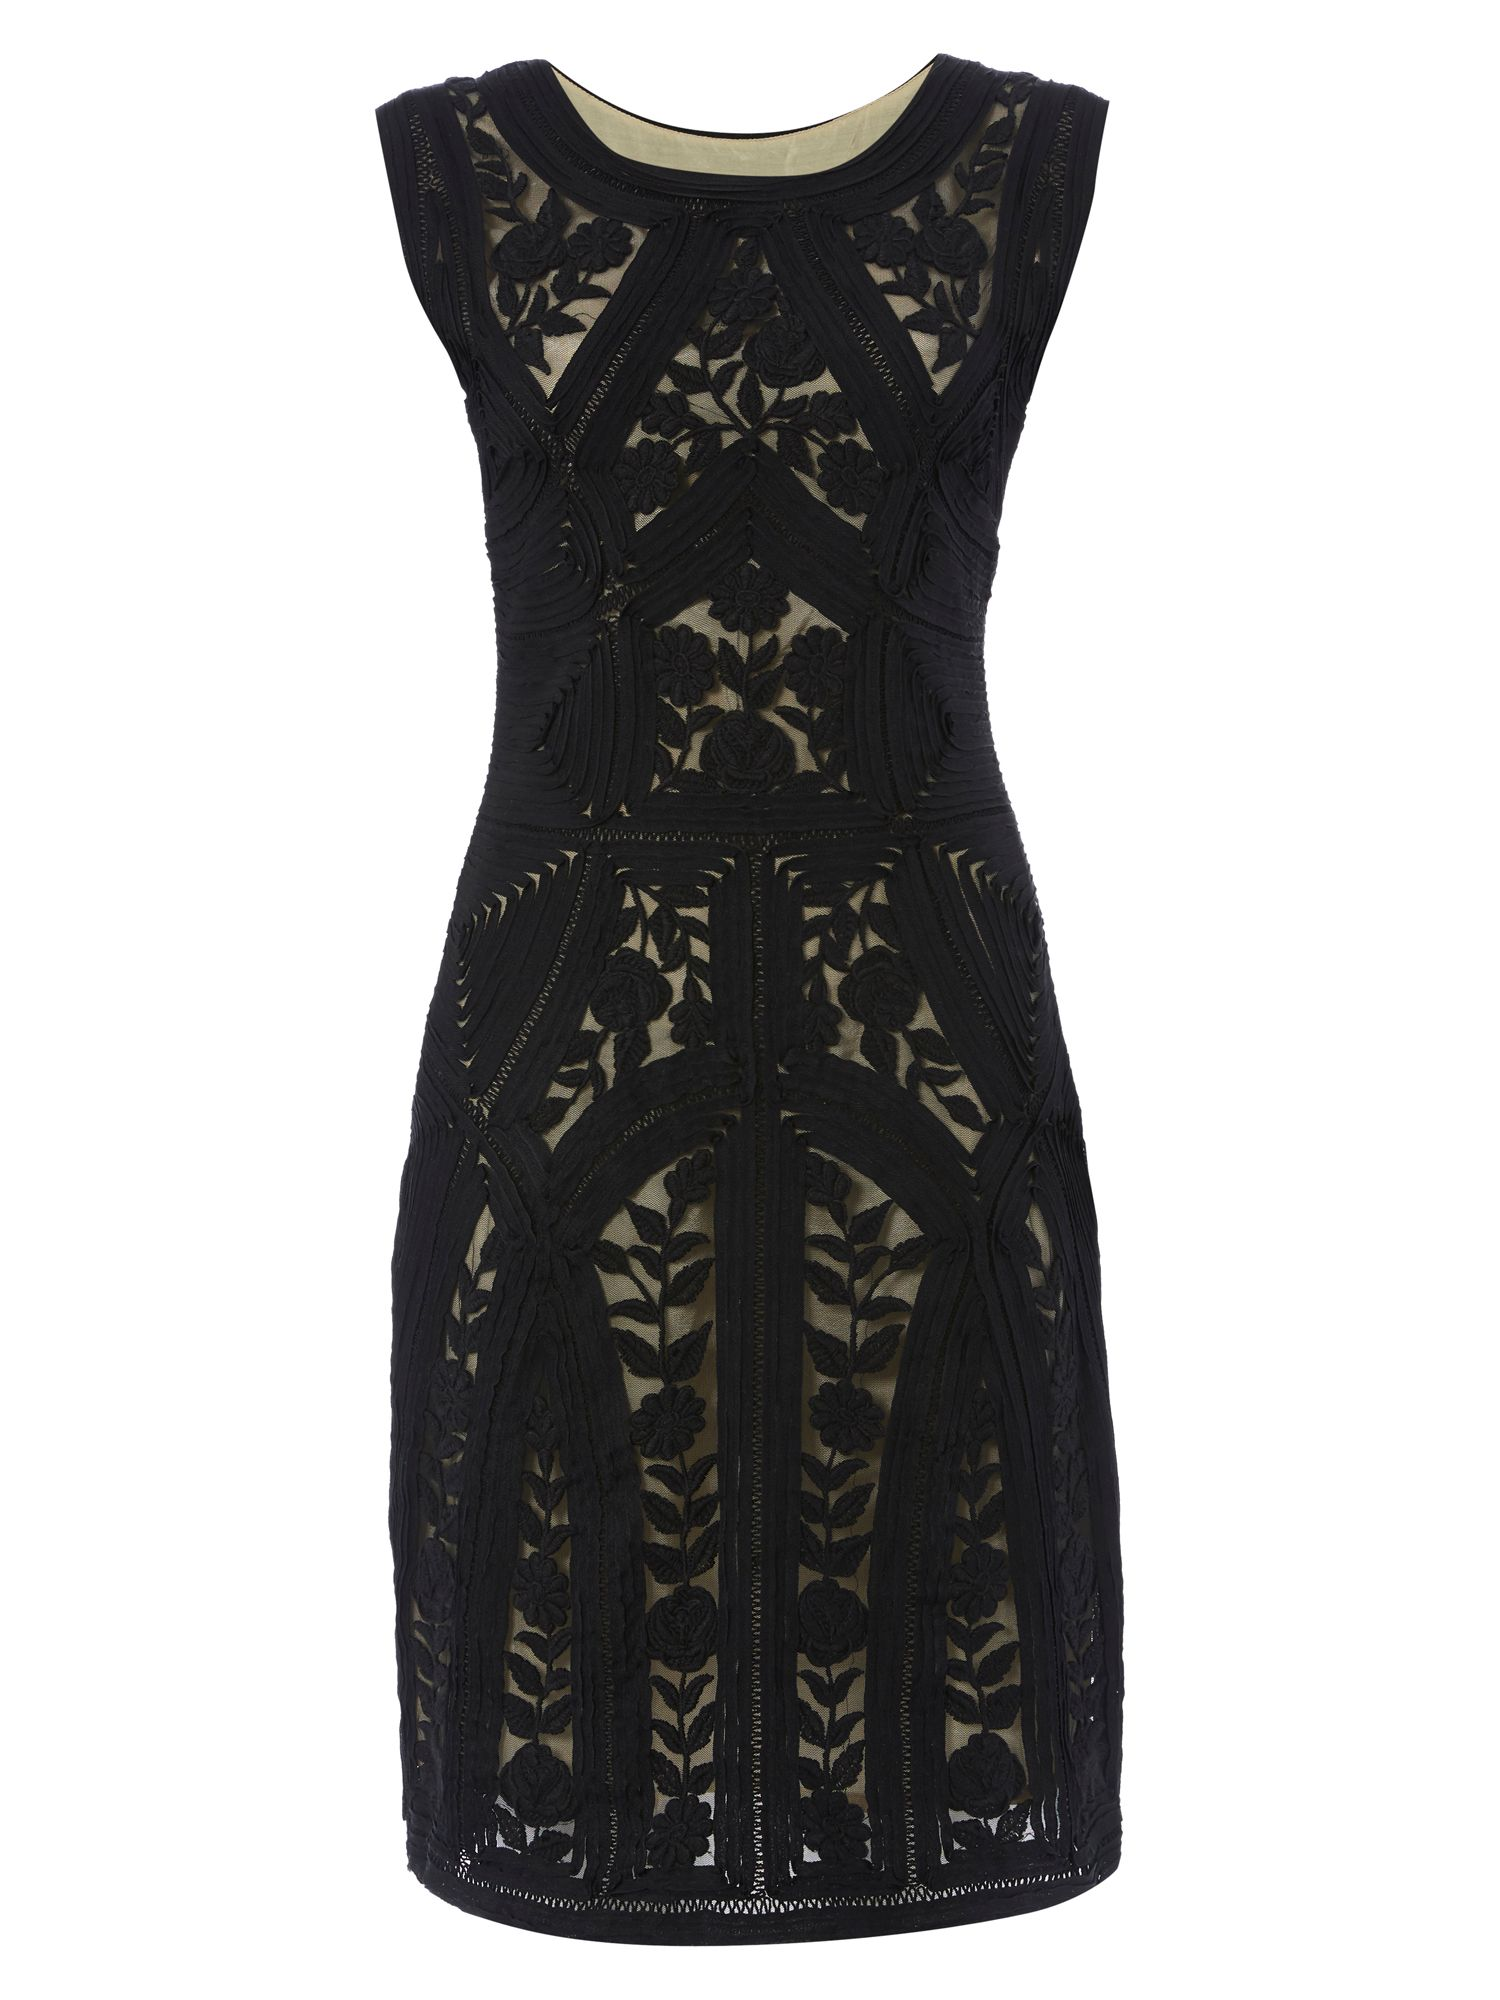 RAISHMA Lace Dress, Black